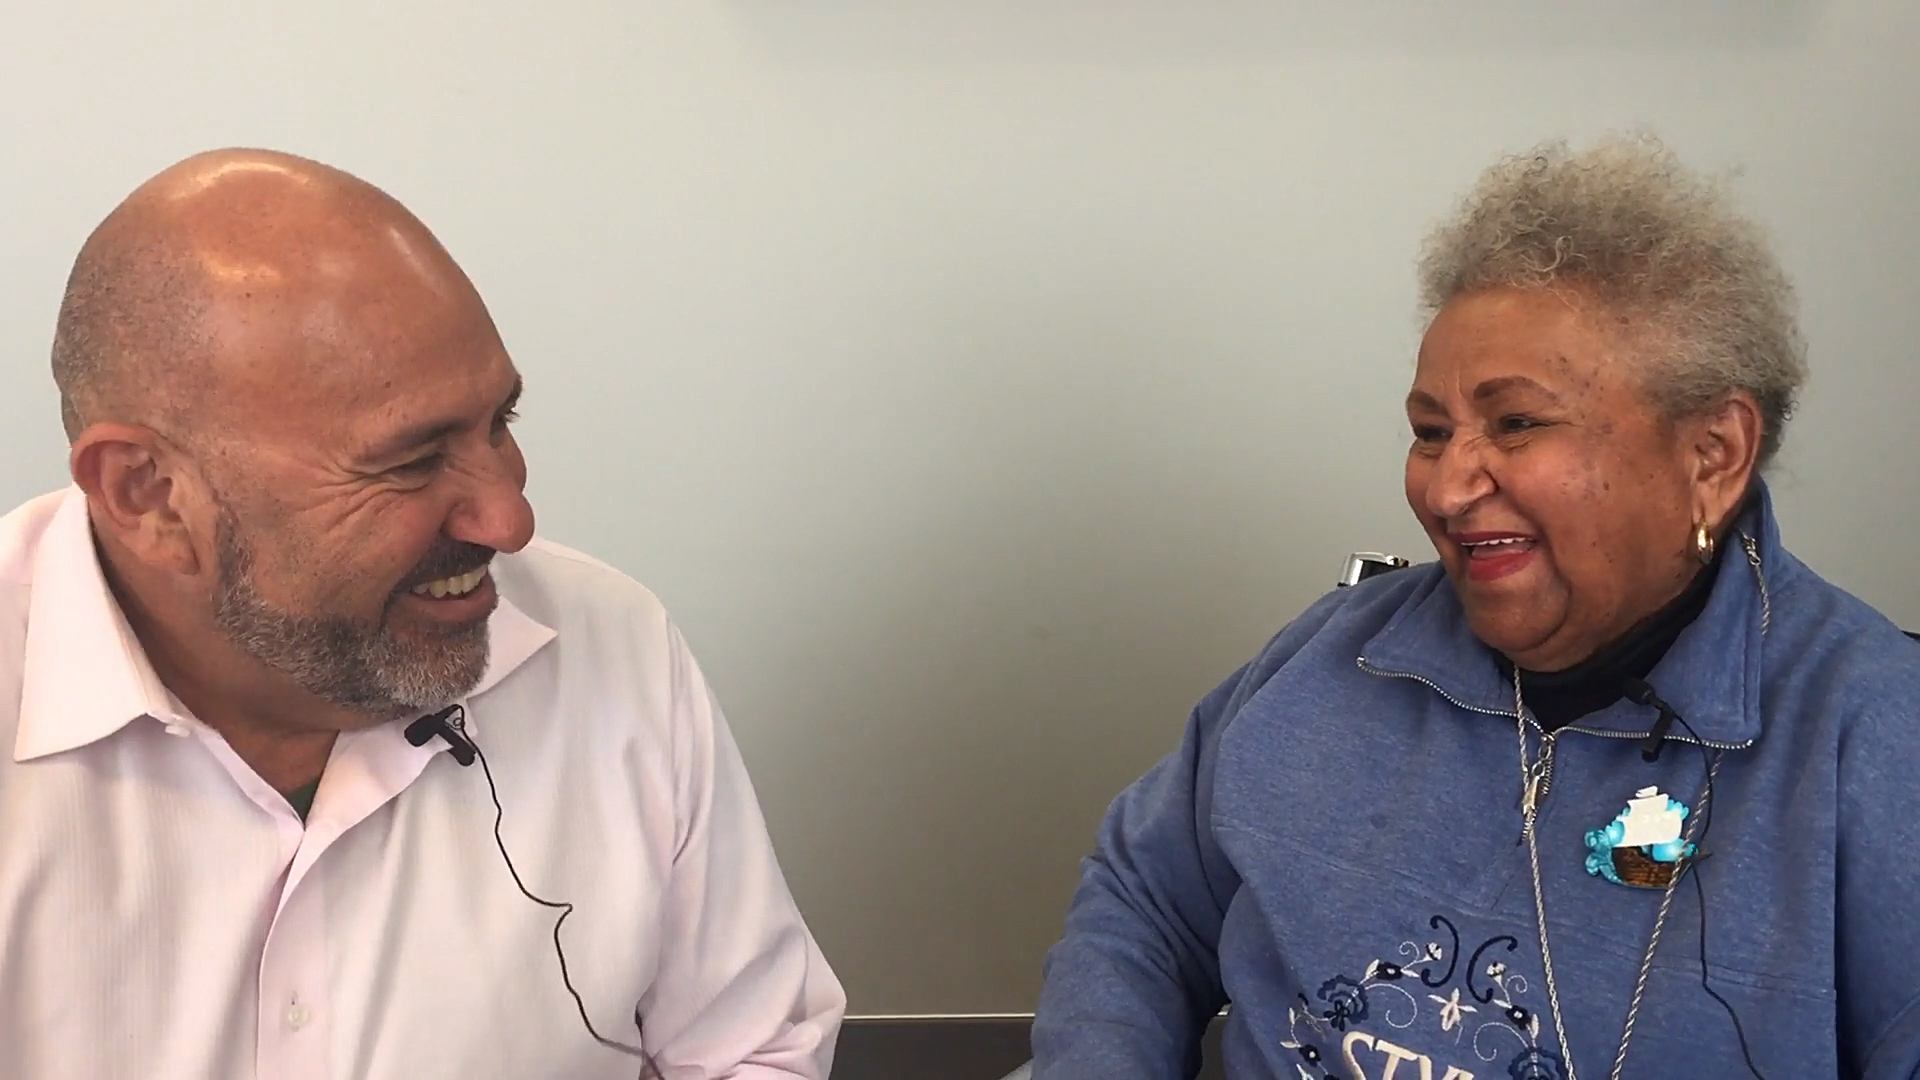 Thelma Weston, 81, is still hard at work. Watch this interview by her son, Richard